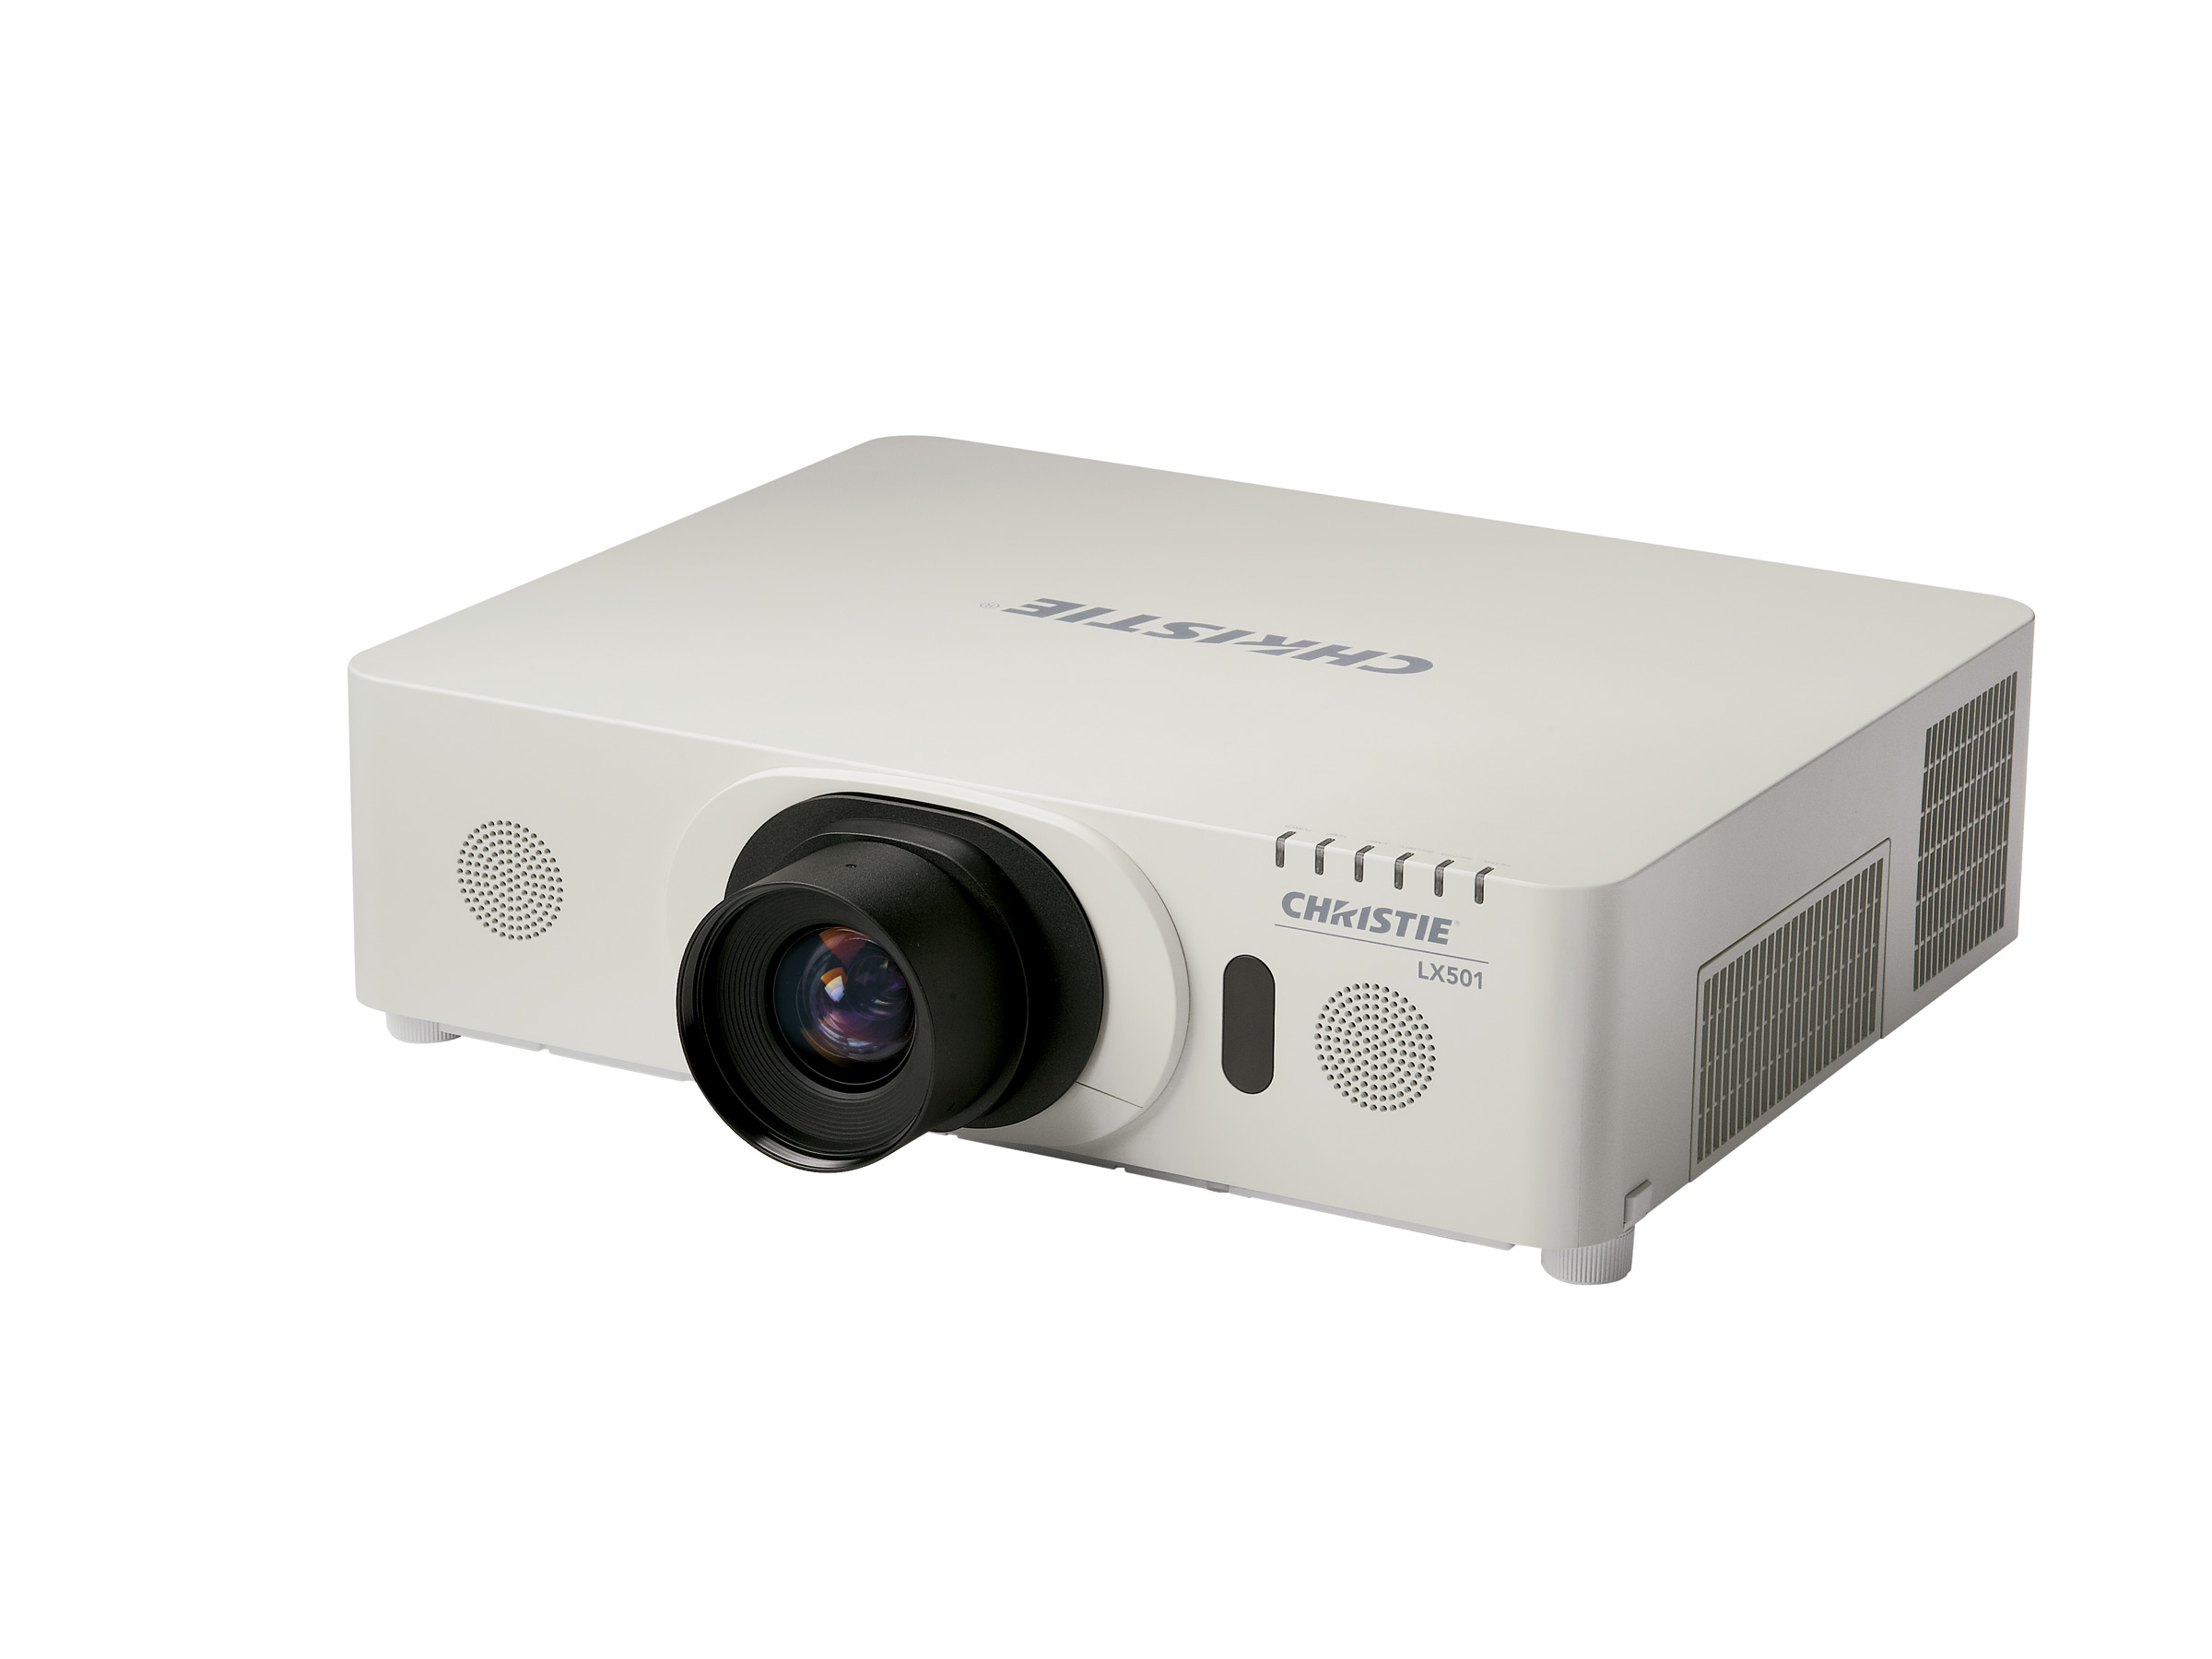 /globalassets/.catalog/products/images/christie-lx501/gallery/christie-lx501-3lcd-digital-projector-image-3.jpg